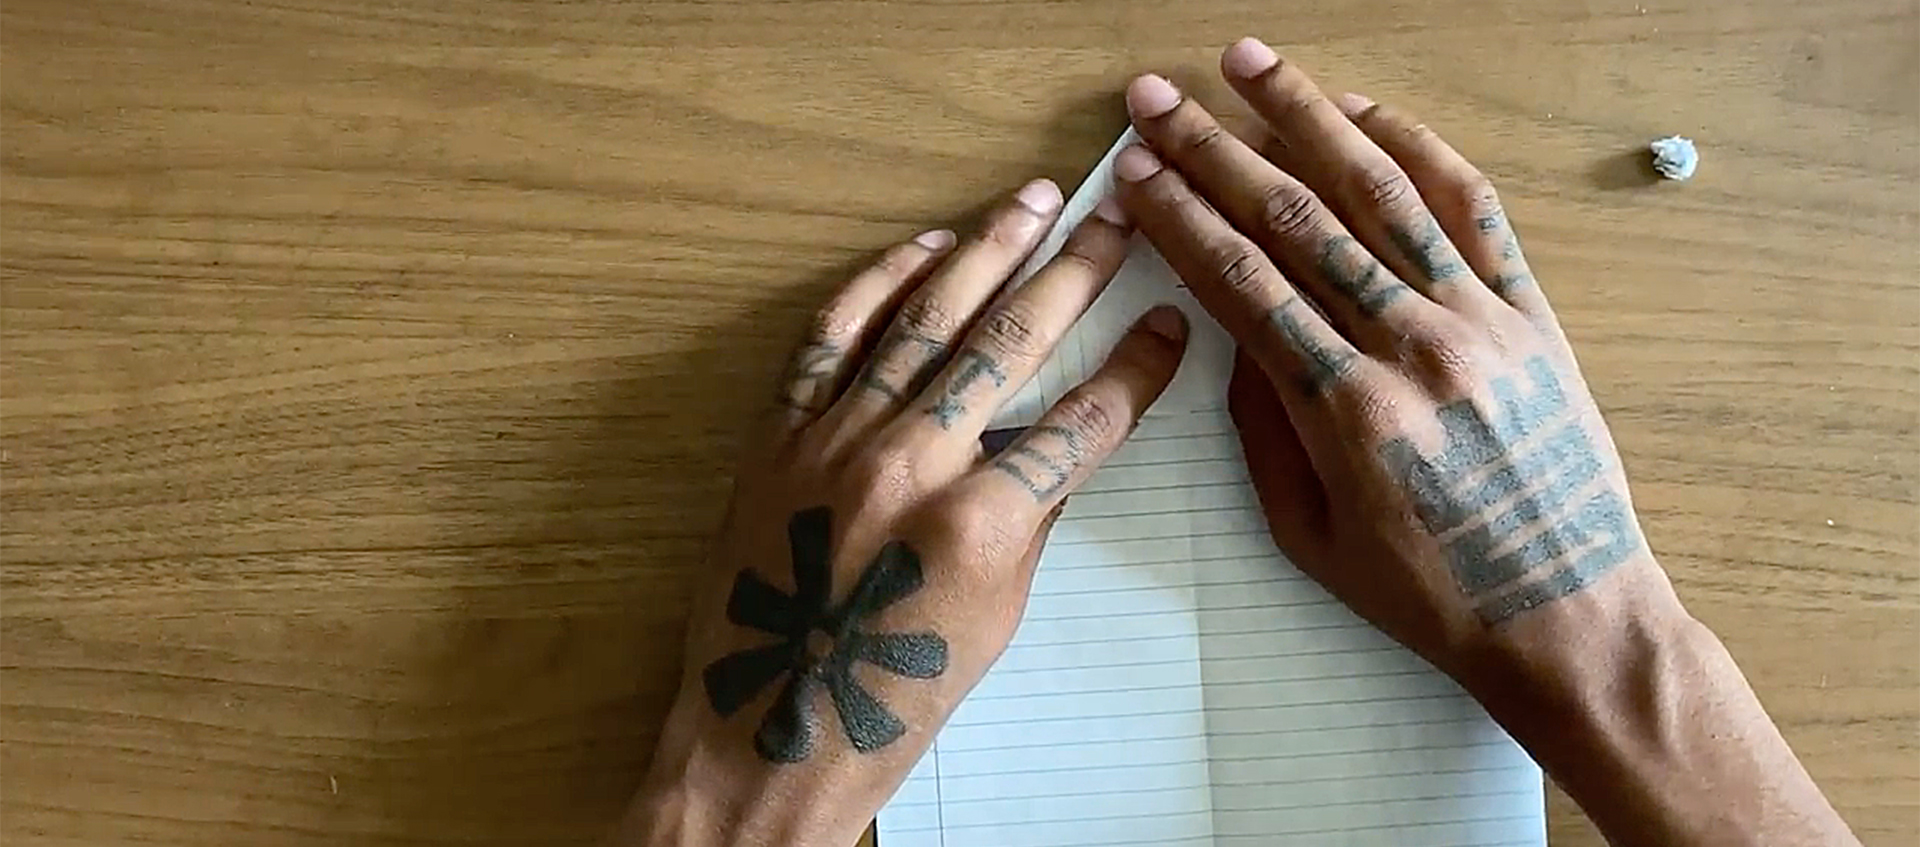 The tattooed hands of African American artist Hakim Callwood begin to fold a piece of lined paper on a wooden surface into a paper airplane